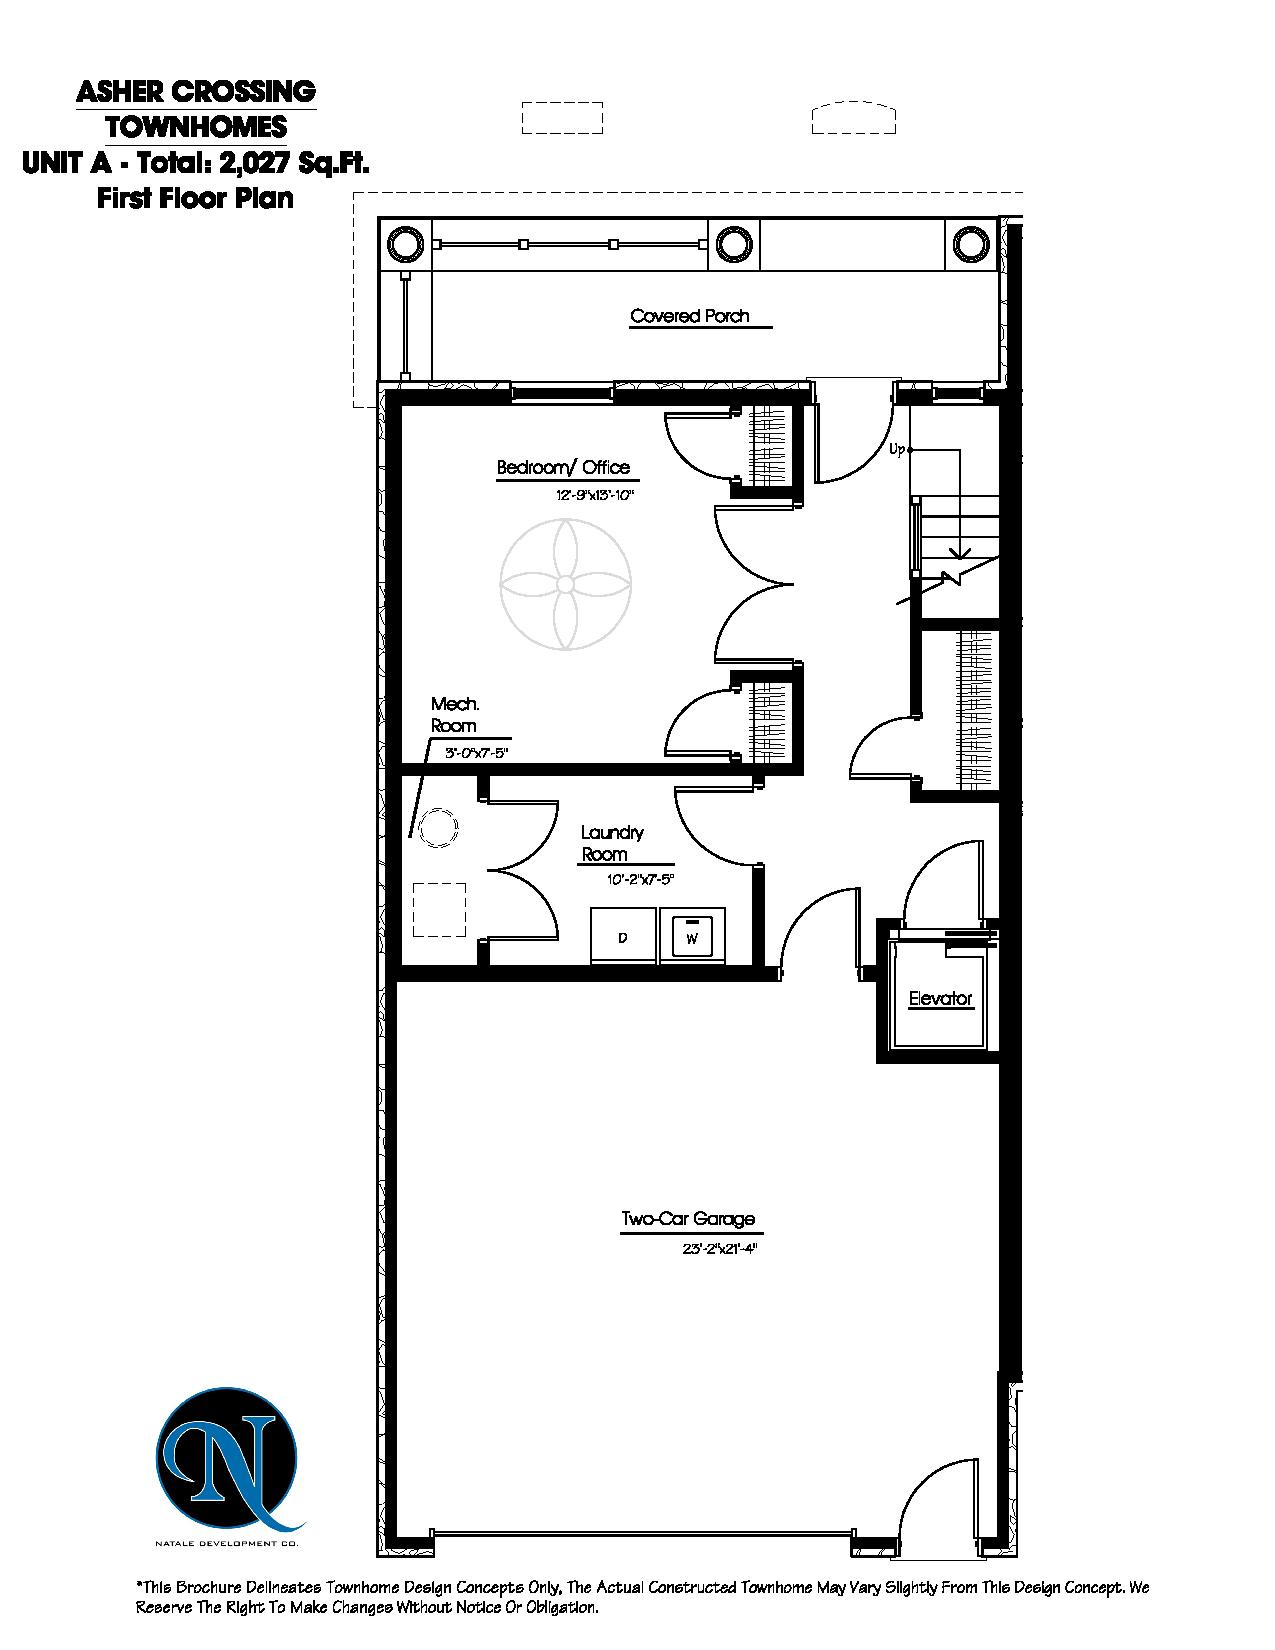 Asher crossing floor plans Unit a